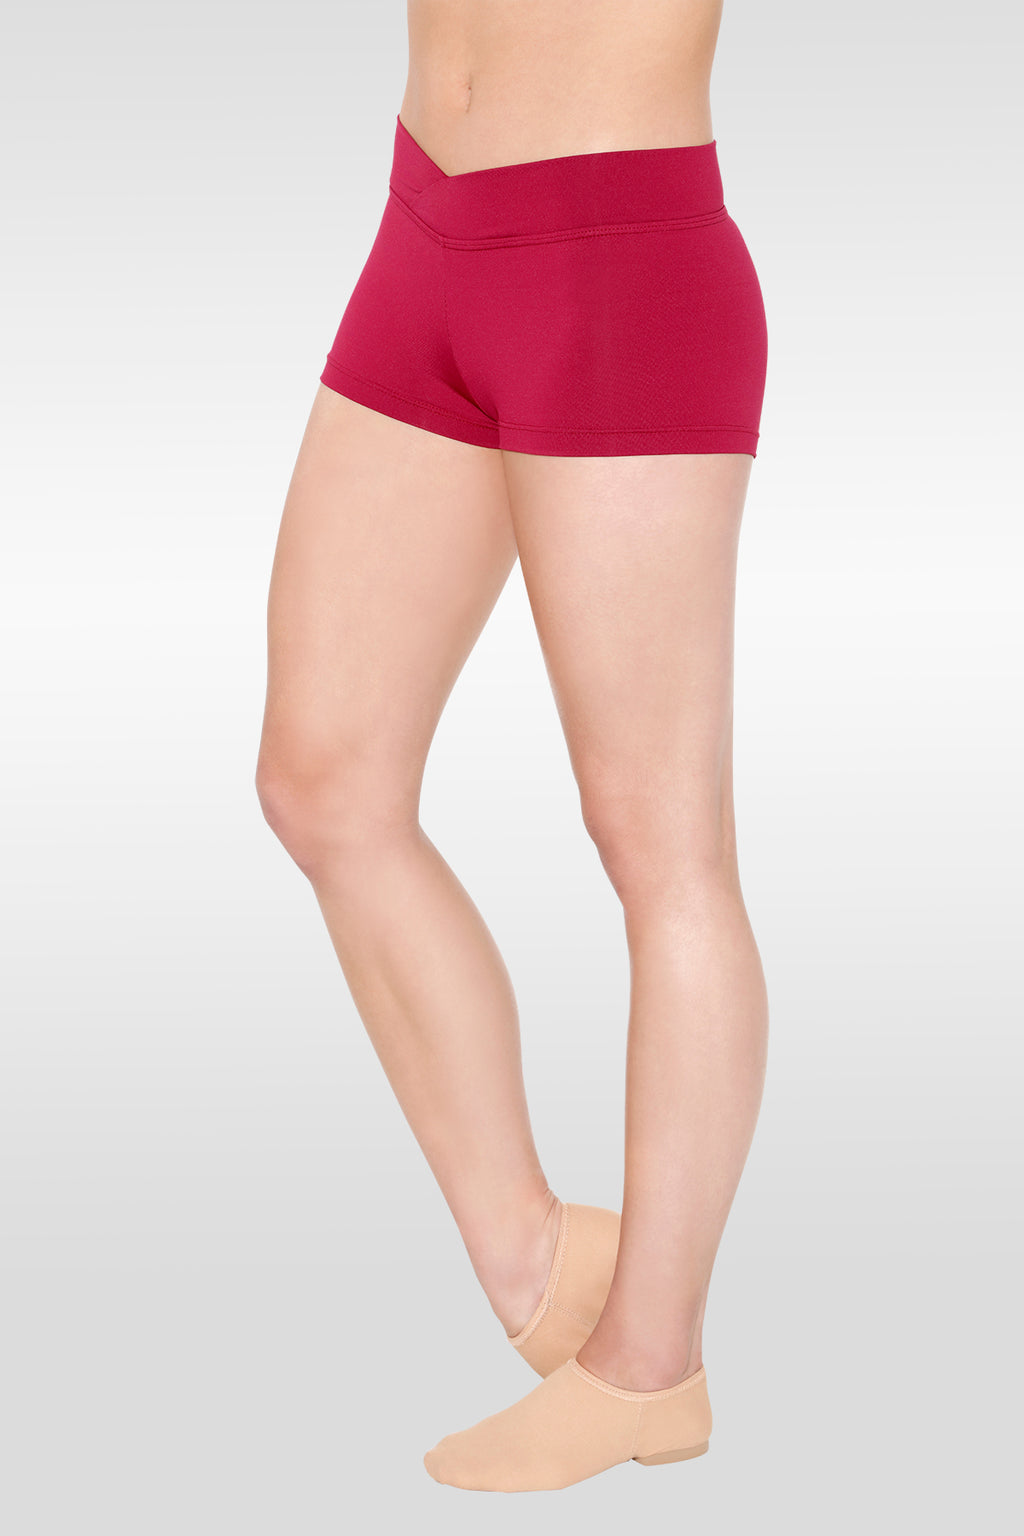 Shorts with V-Front Waistline - Adult